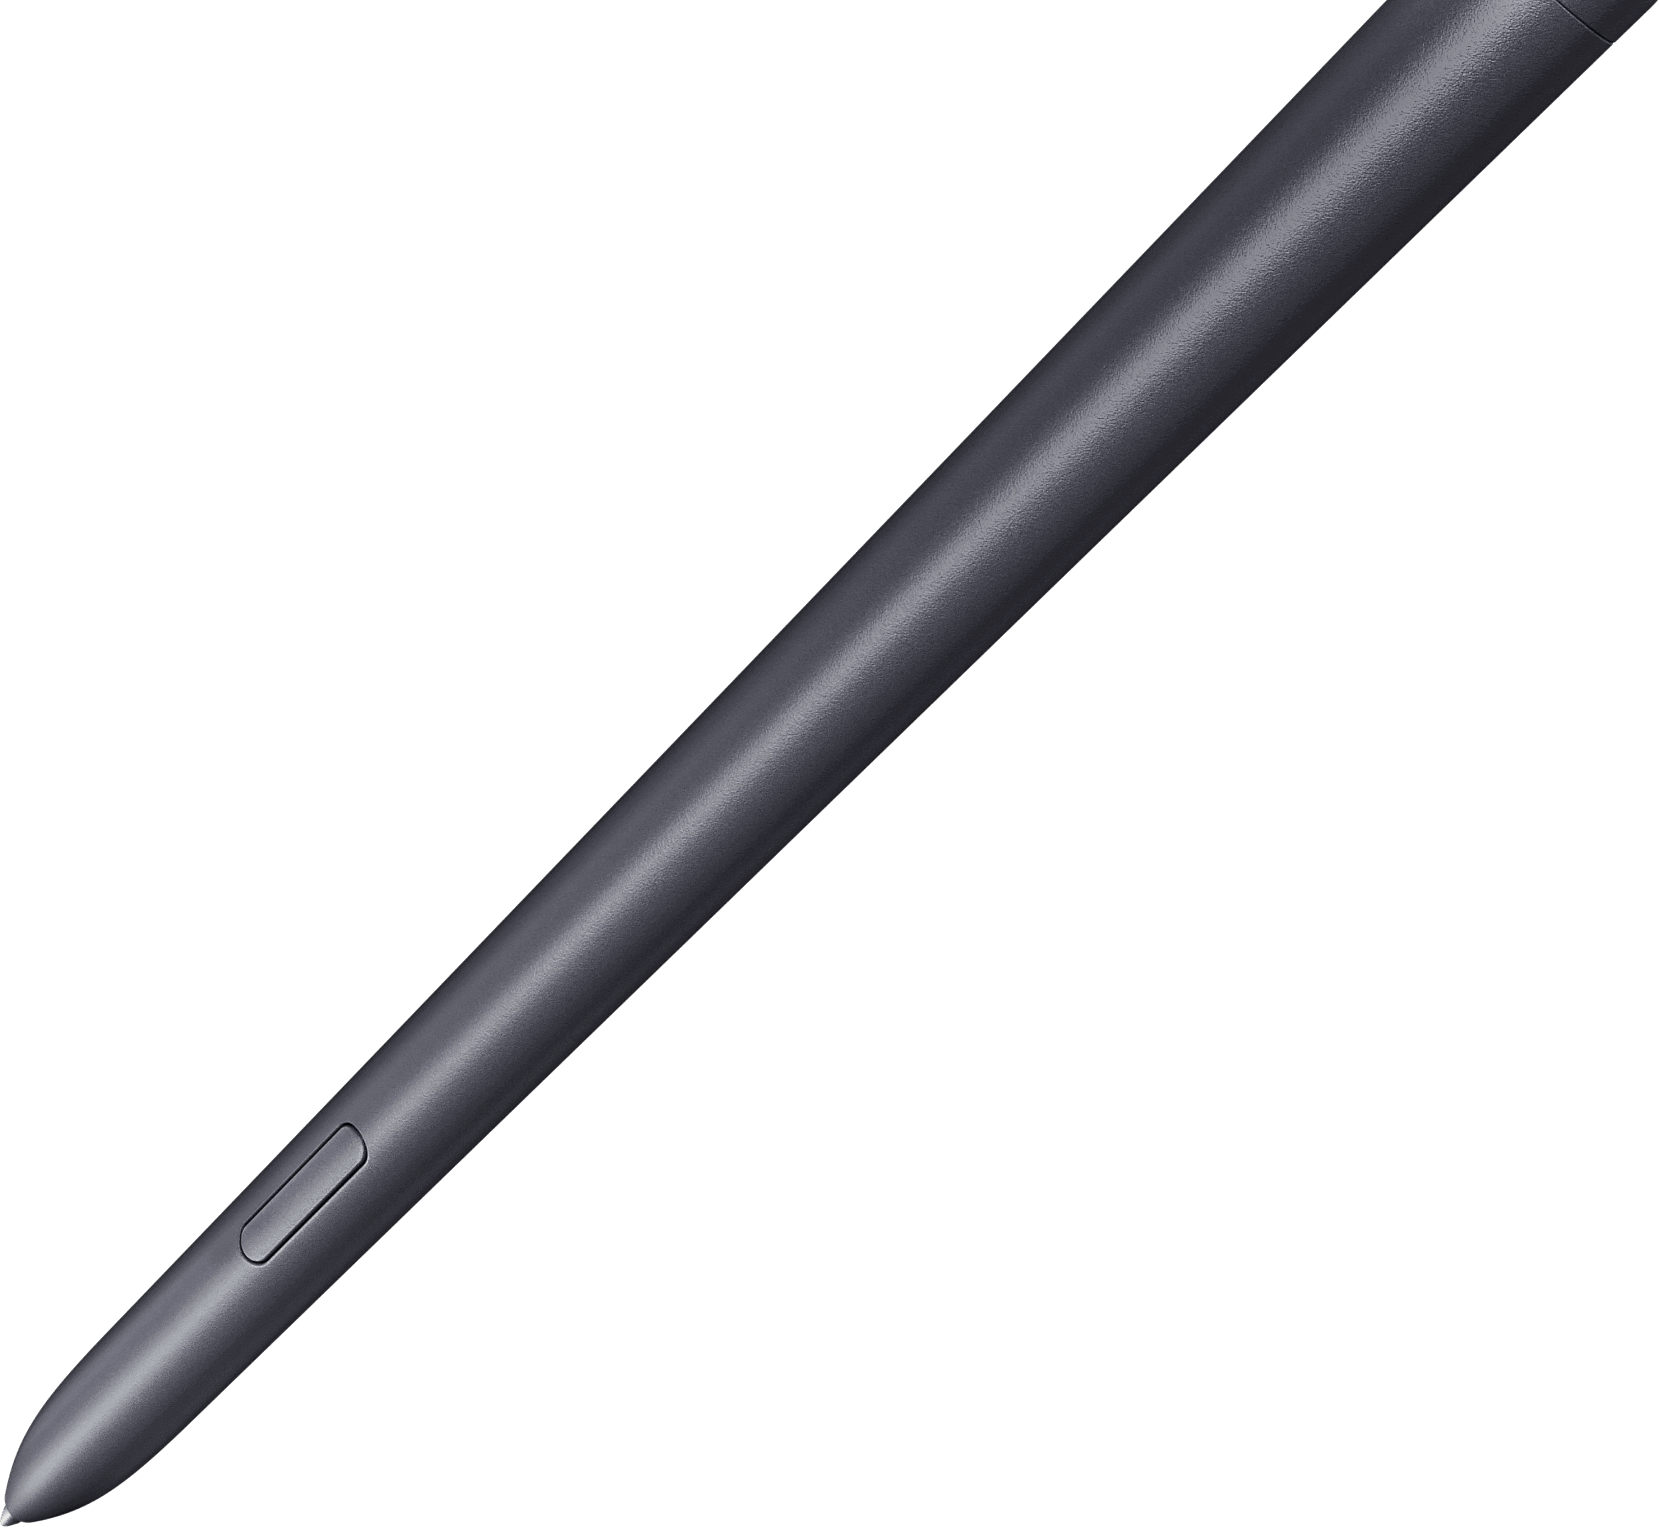 Close-up of S Pen from the side